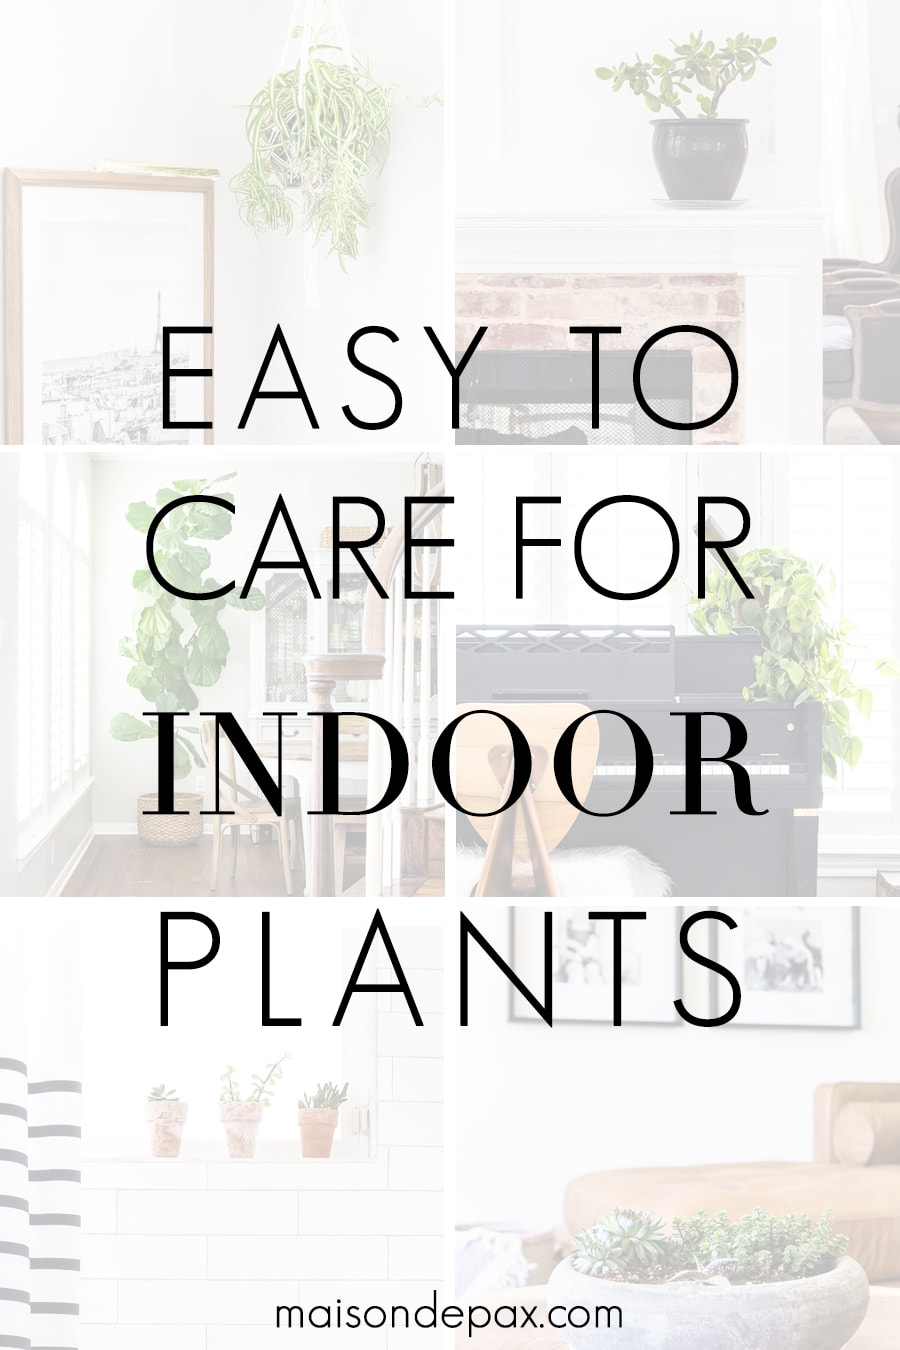 easy to care for indoor plants with pictures of house plants | Maison de Pax